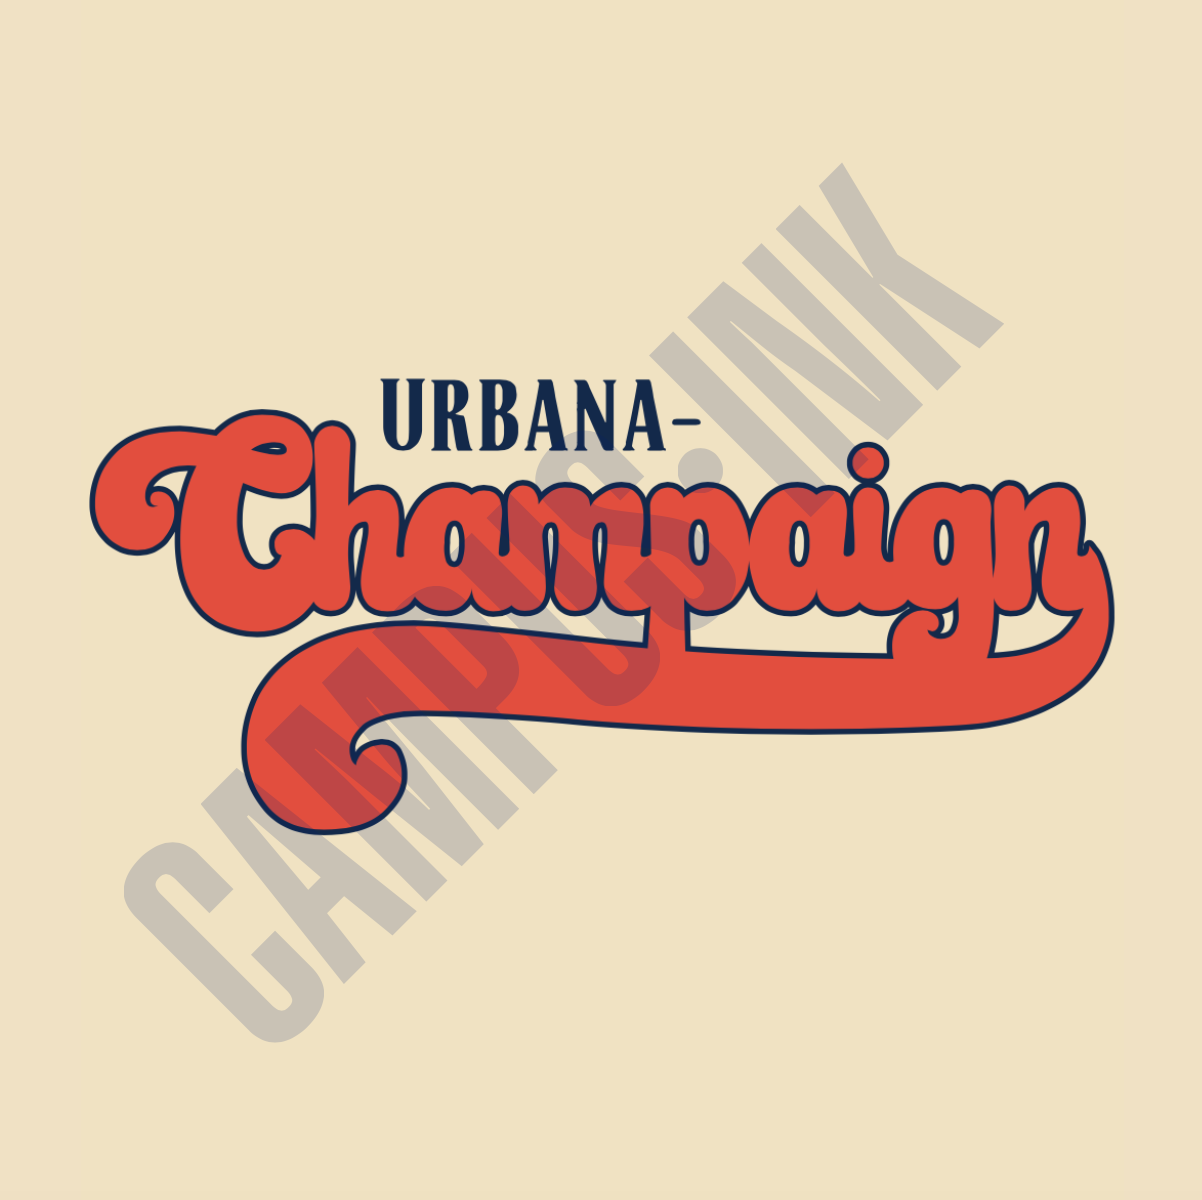 Urbana Champaign Orange and Blue